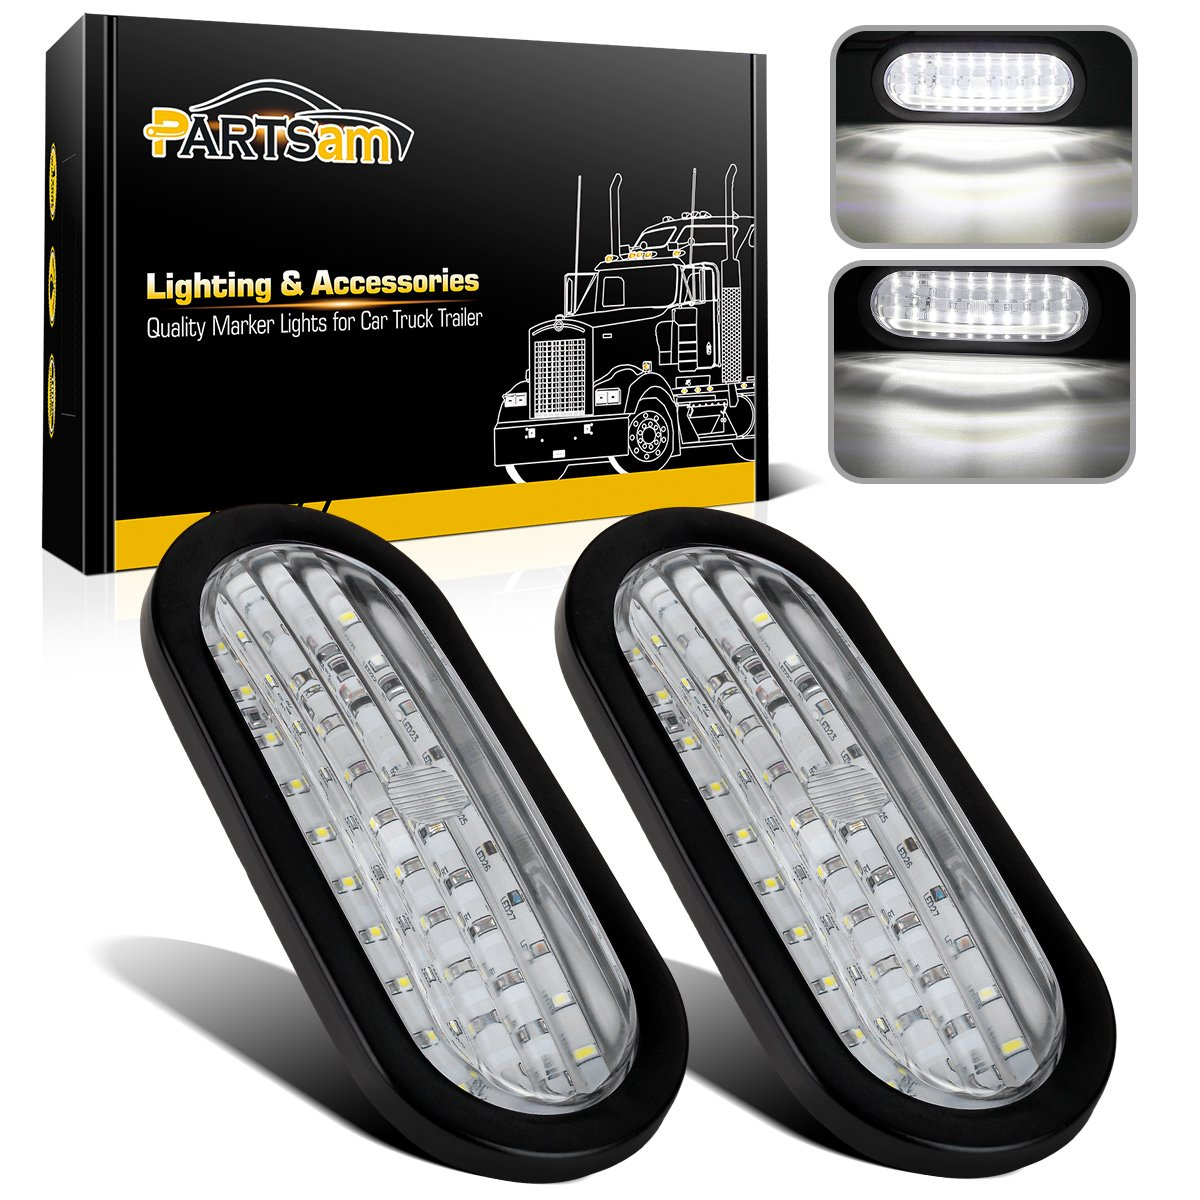 Partsam 2x Waterproof 6 Oval White Stop Turn Tail Also Led Trailer Lights Along With Wiring Reverse 30 W Flush Mount Clear Inch Backup Truck Utility